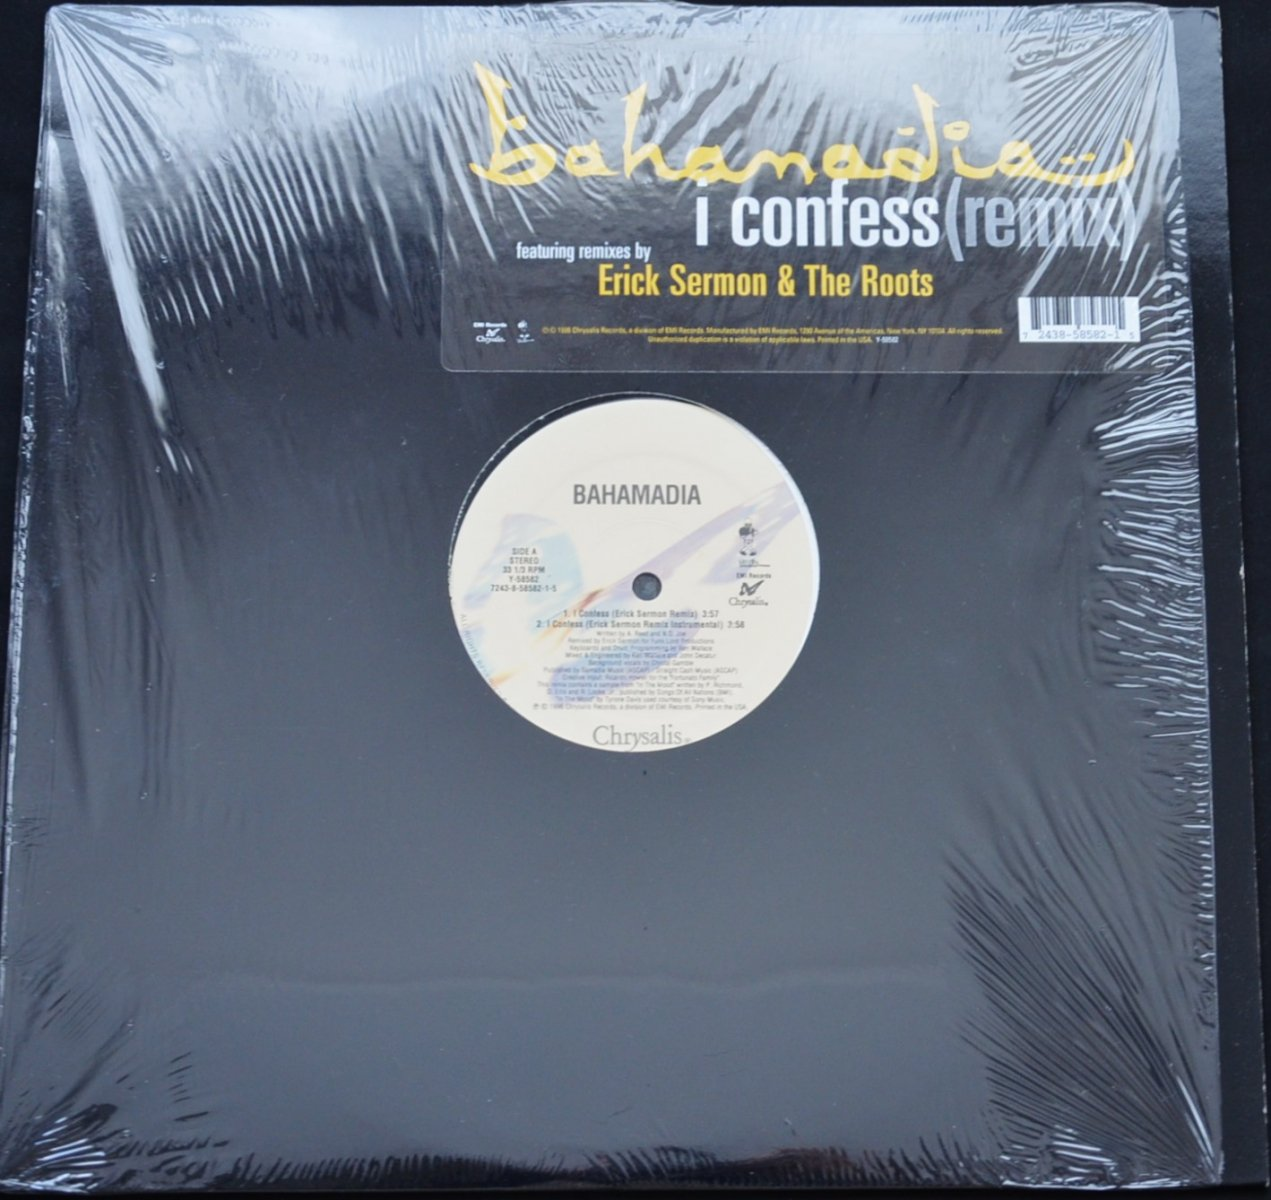 BAHAMADIA / I CONFESS (REMIX) (REMIX BY ERICK SERMON,THE ROOTS) (12